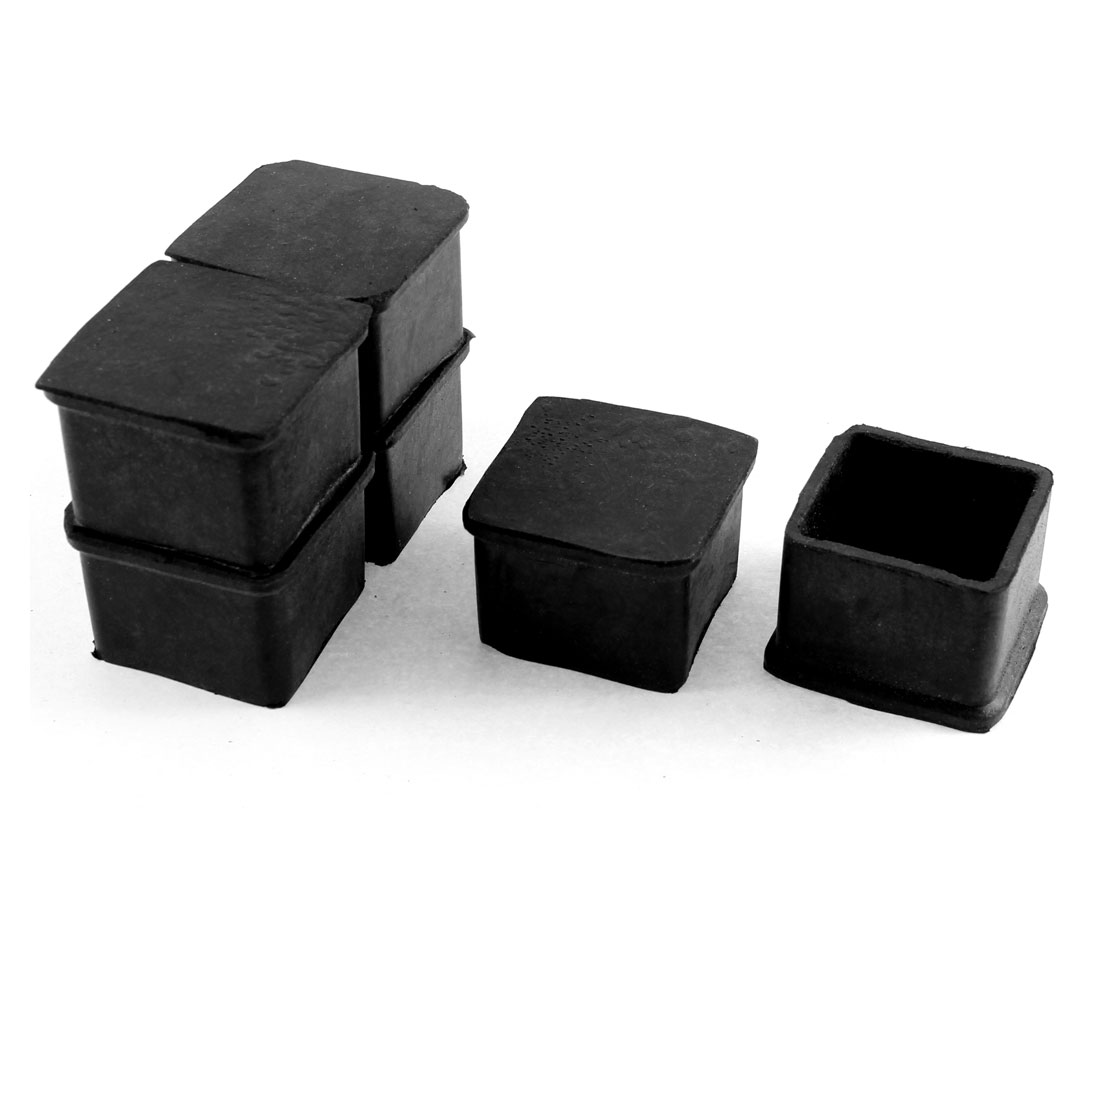 40mm x 40mm Rubber Square Furniture Chair Leg Cap Foot Cover Holder Protective Pad 6pcs